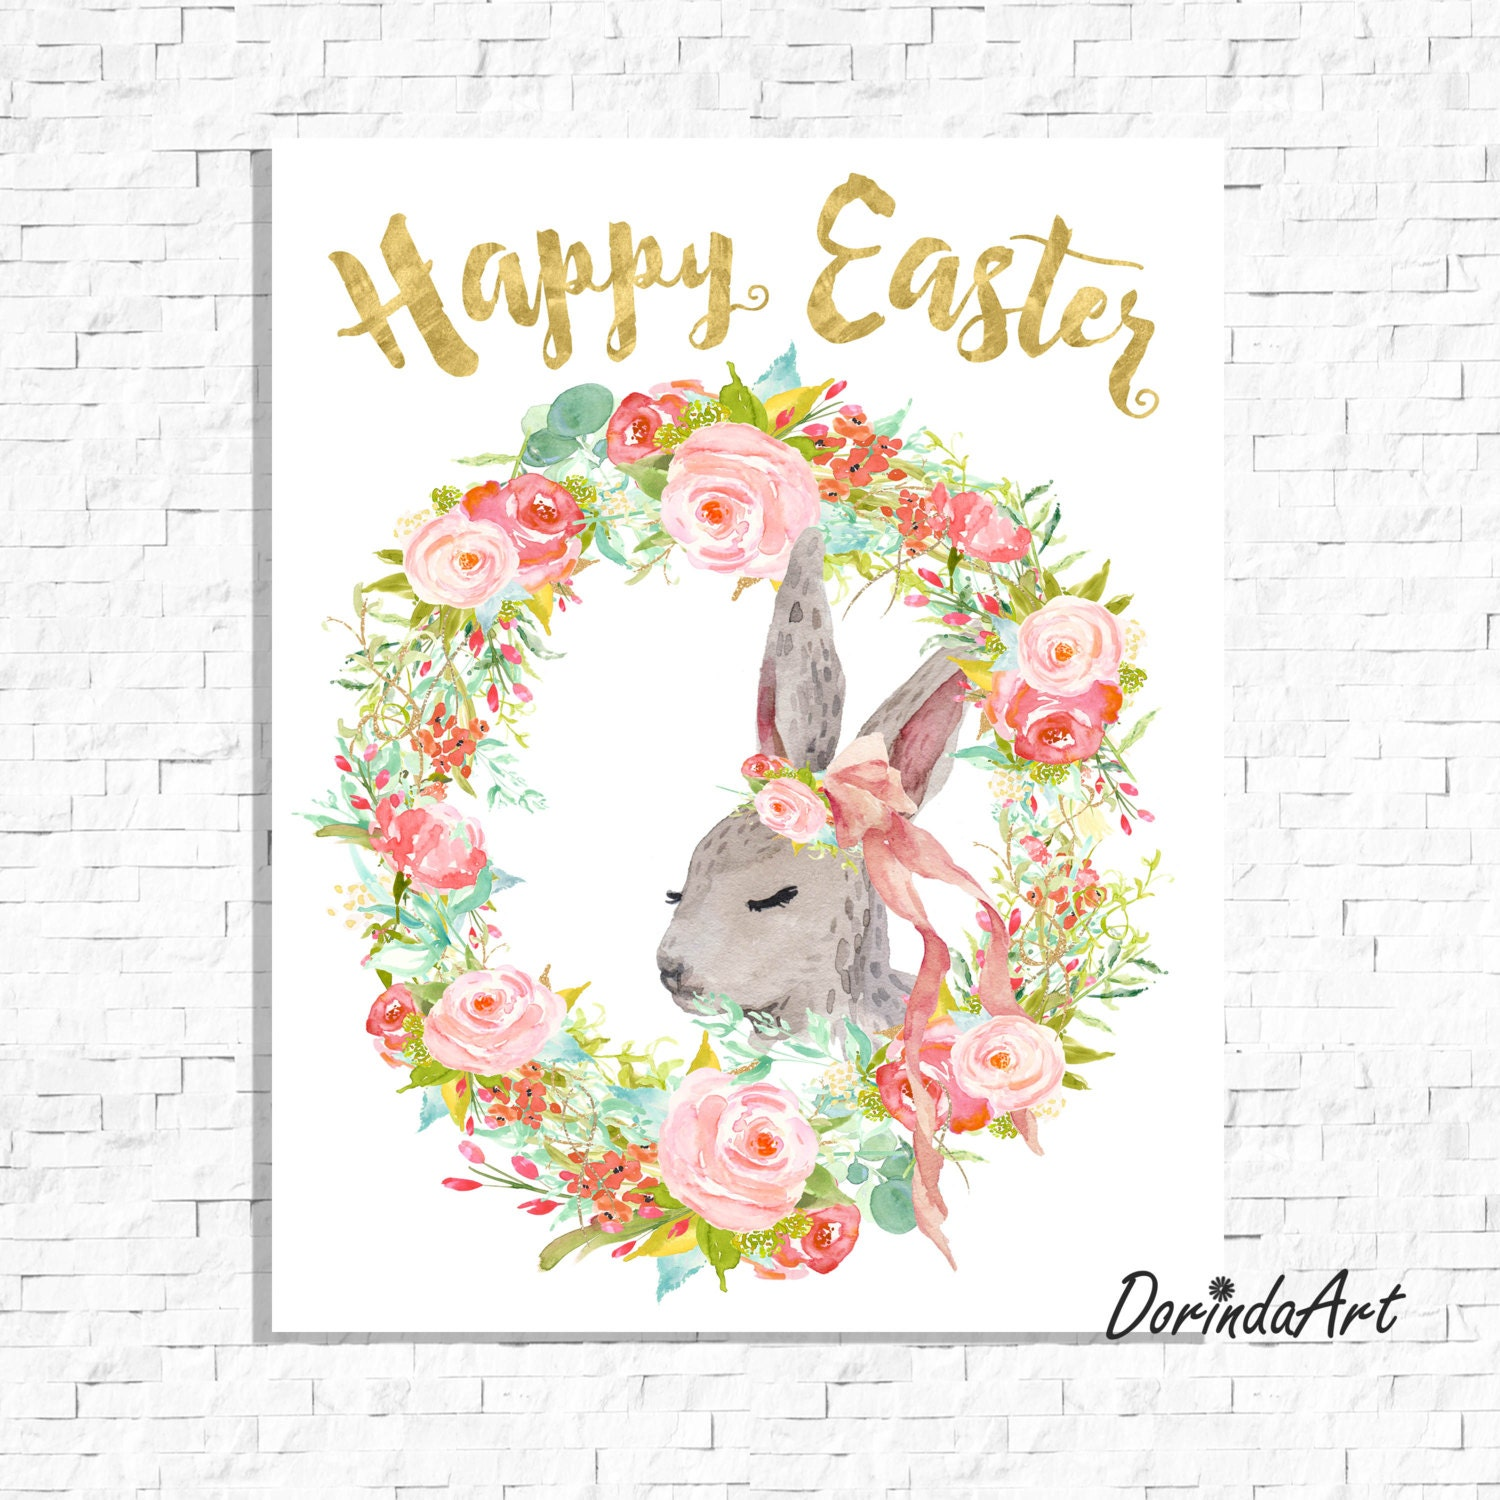 picture regarding Happy Easter Sign Printable referred to as Easter Printable Easter Bunny Print Down load Satisfied Easter Wreath Watercolor Card Satisfied Easter indication Floral Easter decor 5x7 8x10 11x14 16x20